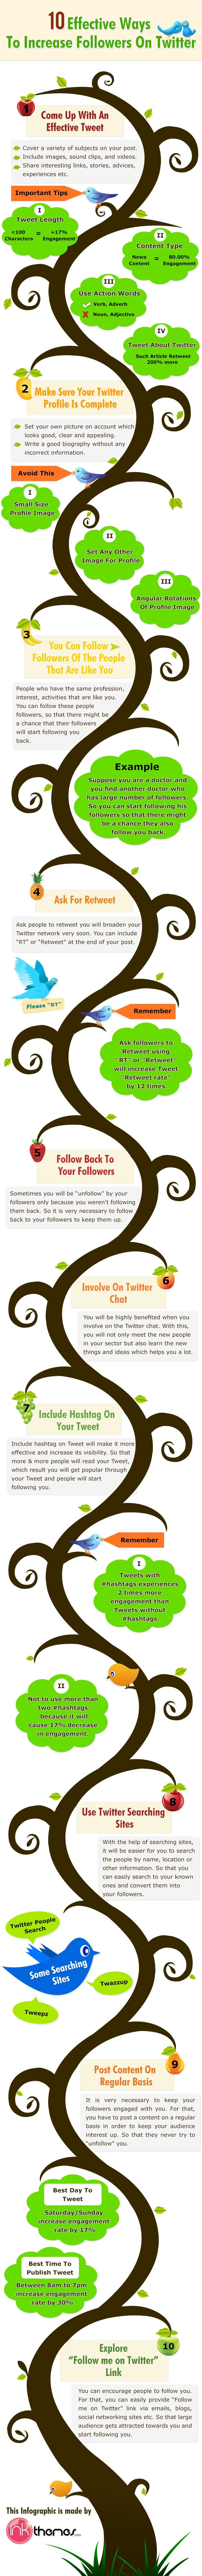 Infographic: 10 Effective Ways To Get More Followers On Twitter, get more followers on twitter, how to get more followers on twitter